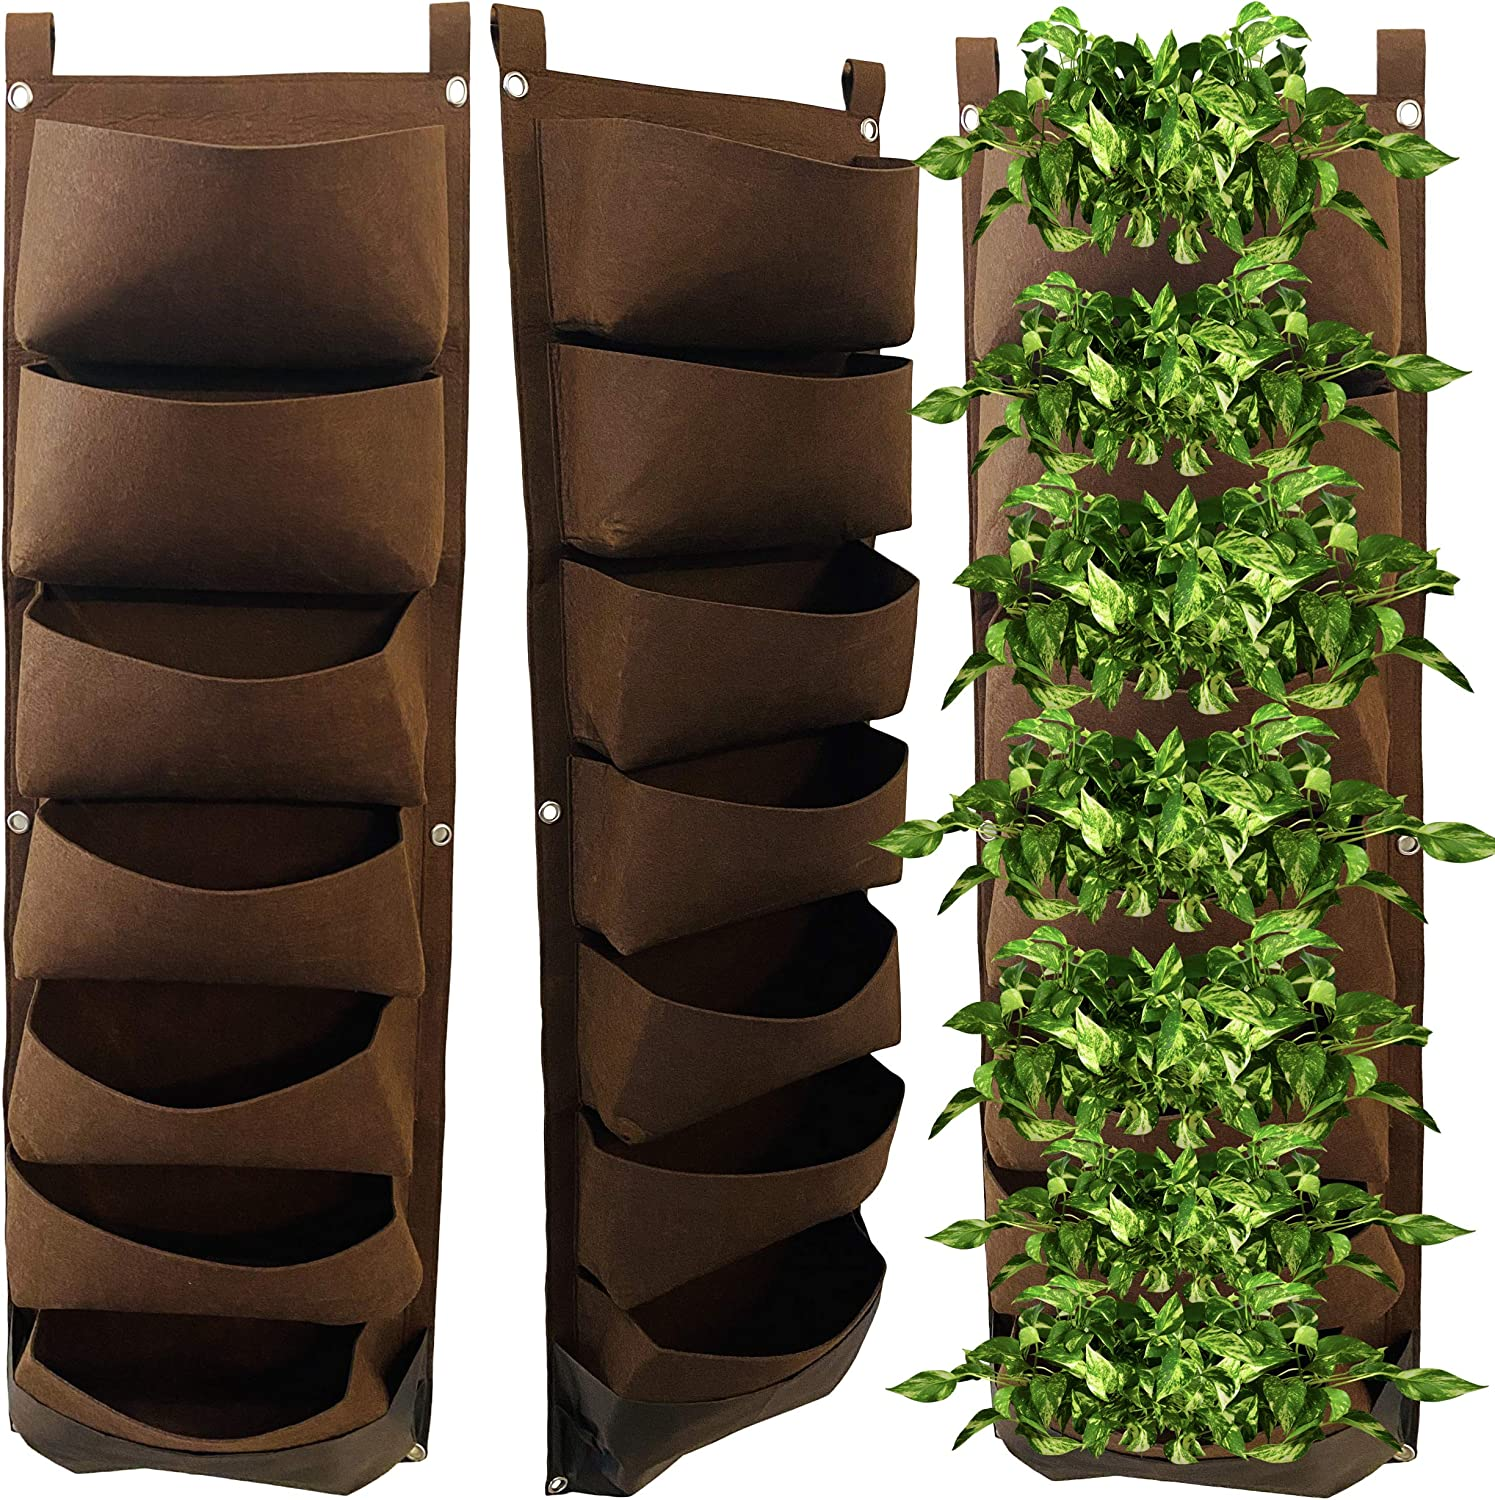 Vertical Wall Planter for Indoor Plants & Outdoor. Vertical Garden w/ 7 Pockets Waterproof. Herb Garden Strawberry Planter. Indoor Vegetable Garden. Wall Planter for Patio Balcony Fence. Plant Hanger